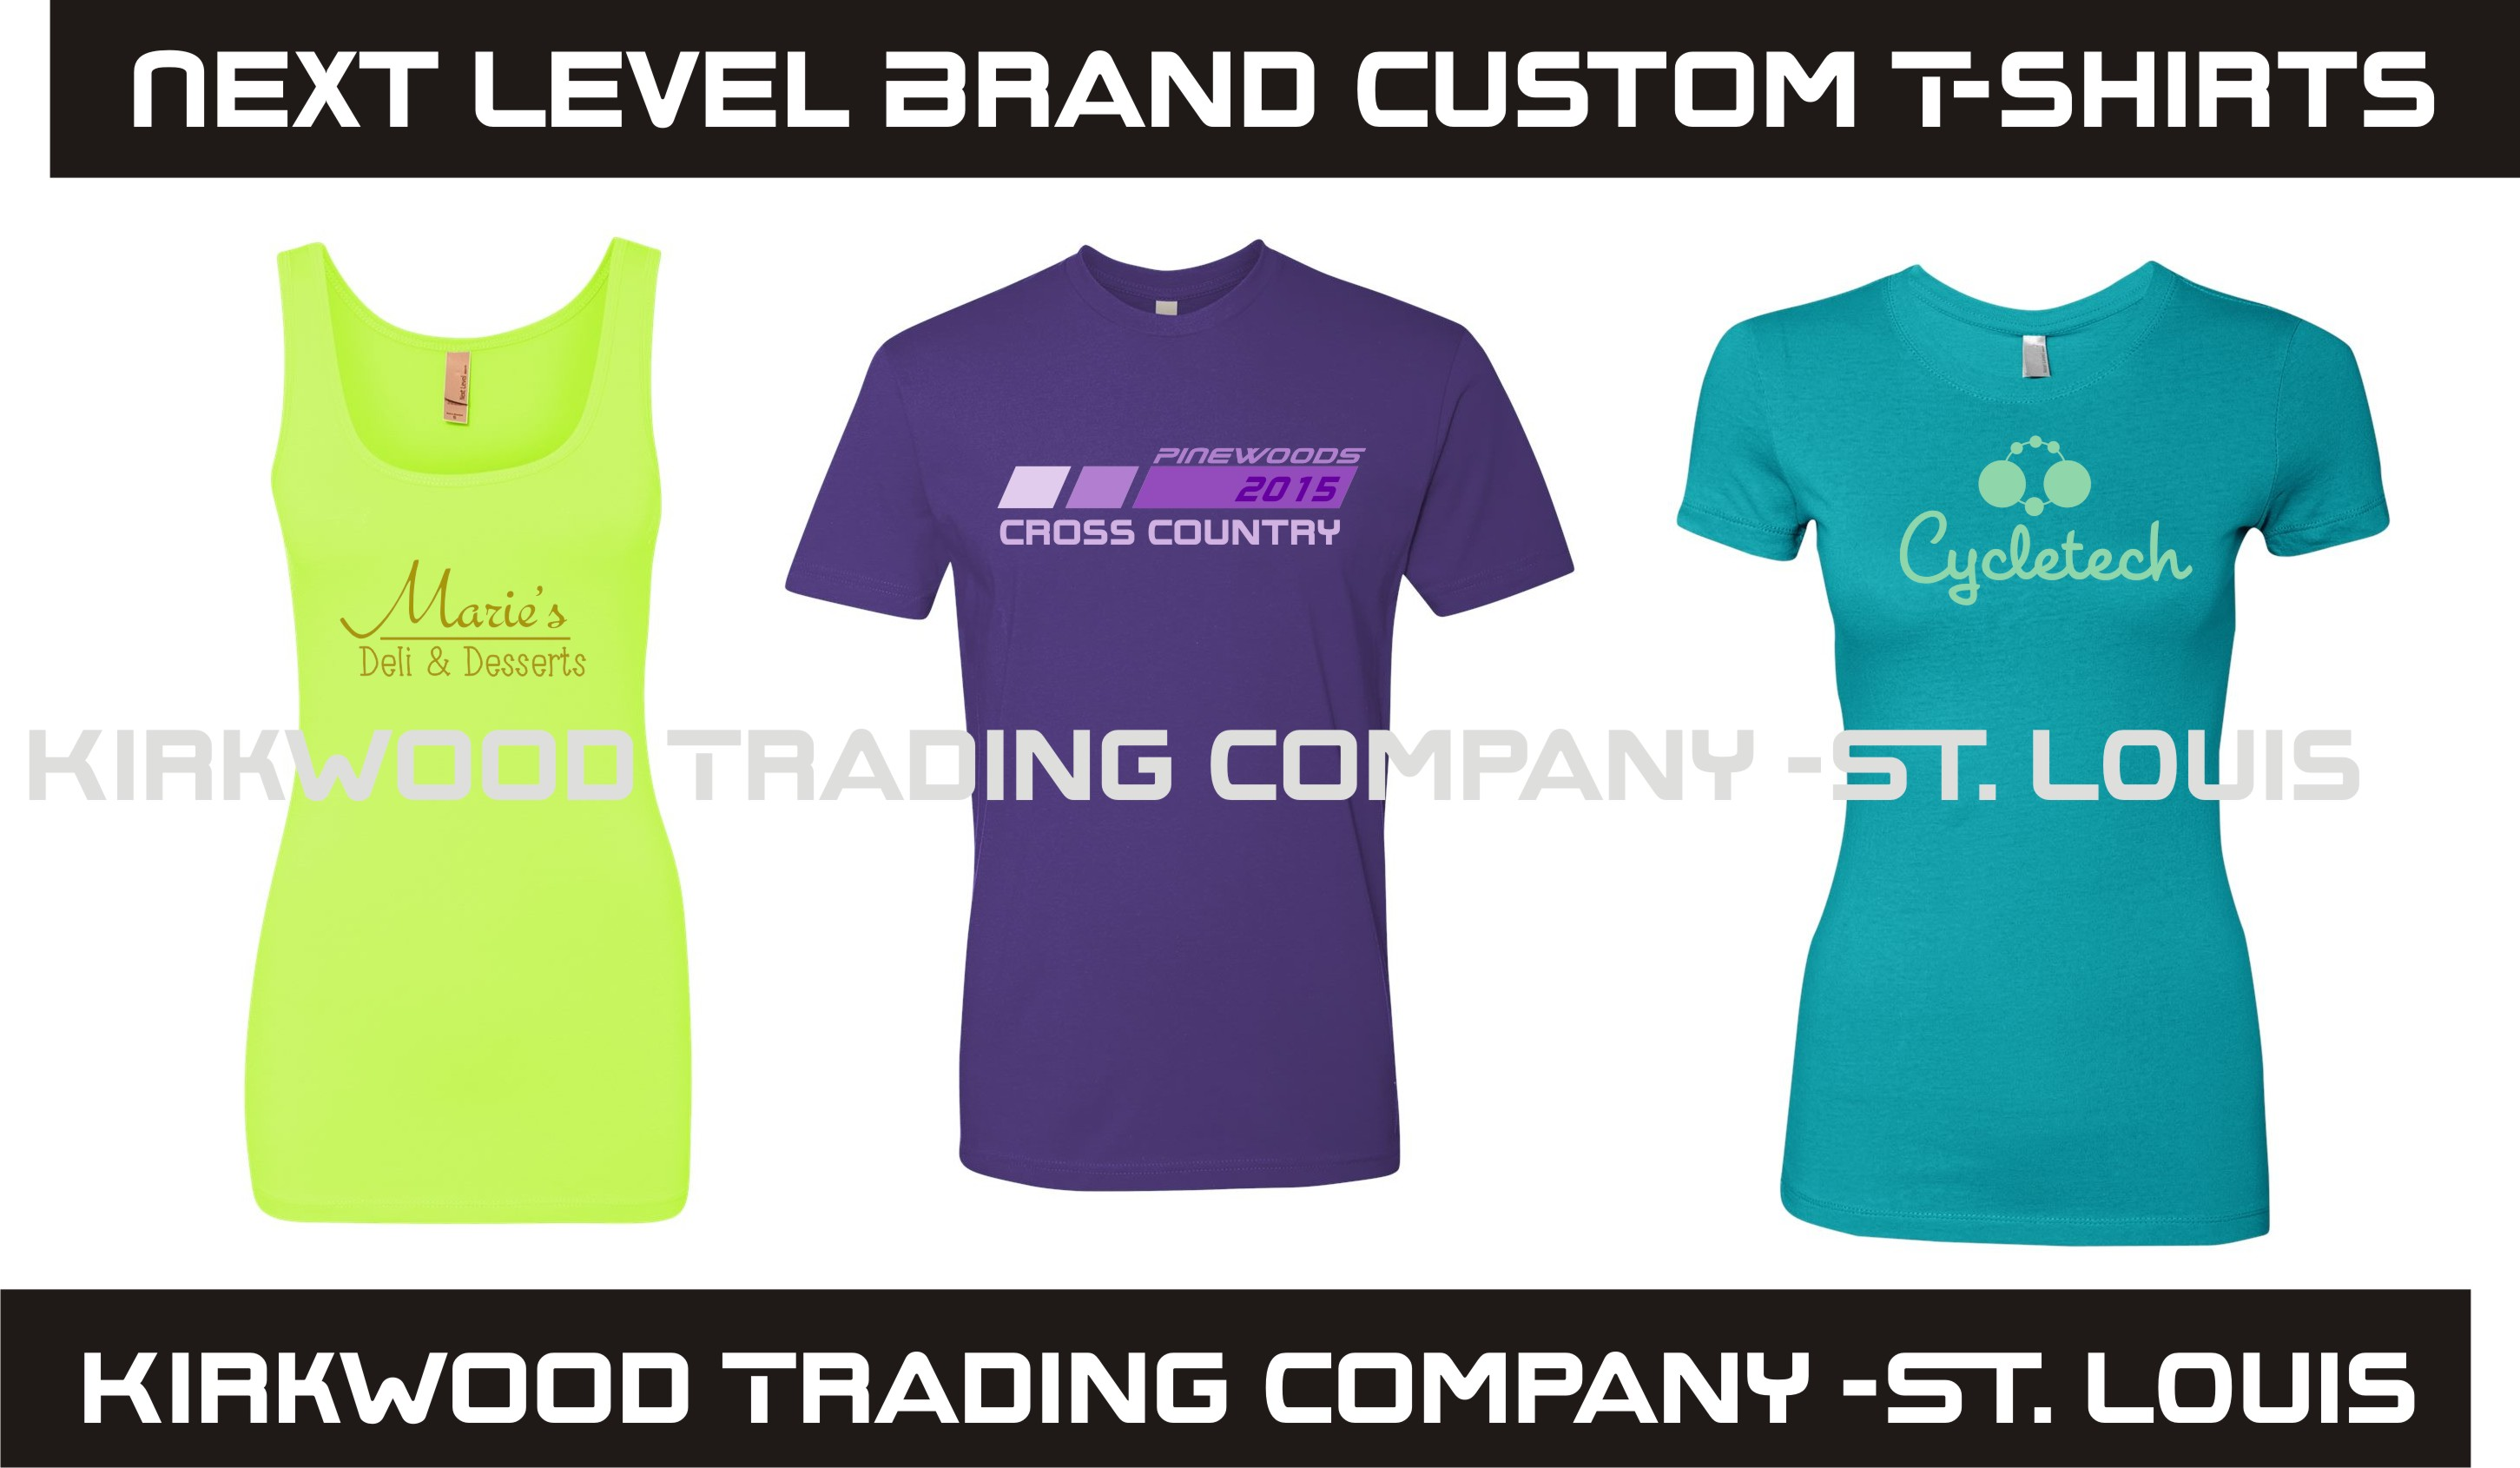 Custom Printed Next Level T Shirts Kirkwood Trading